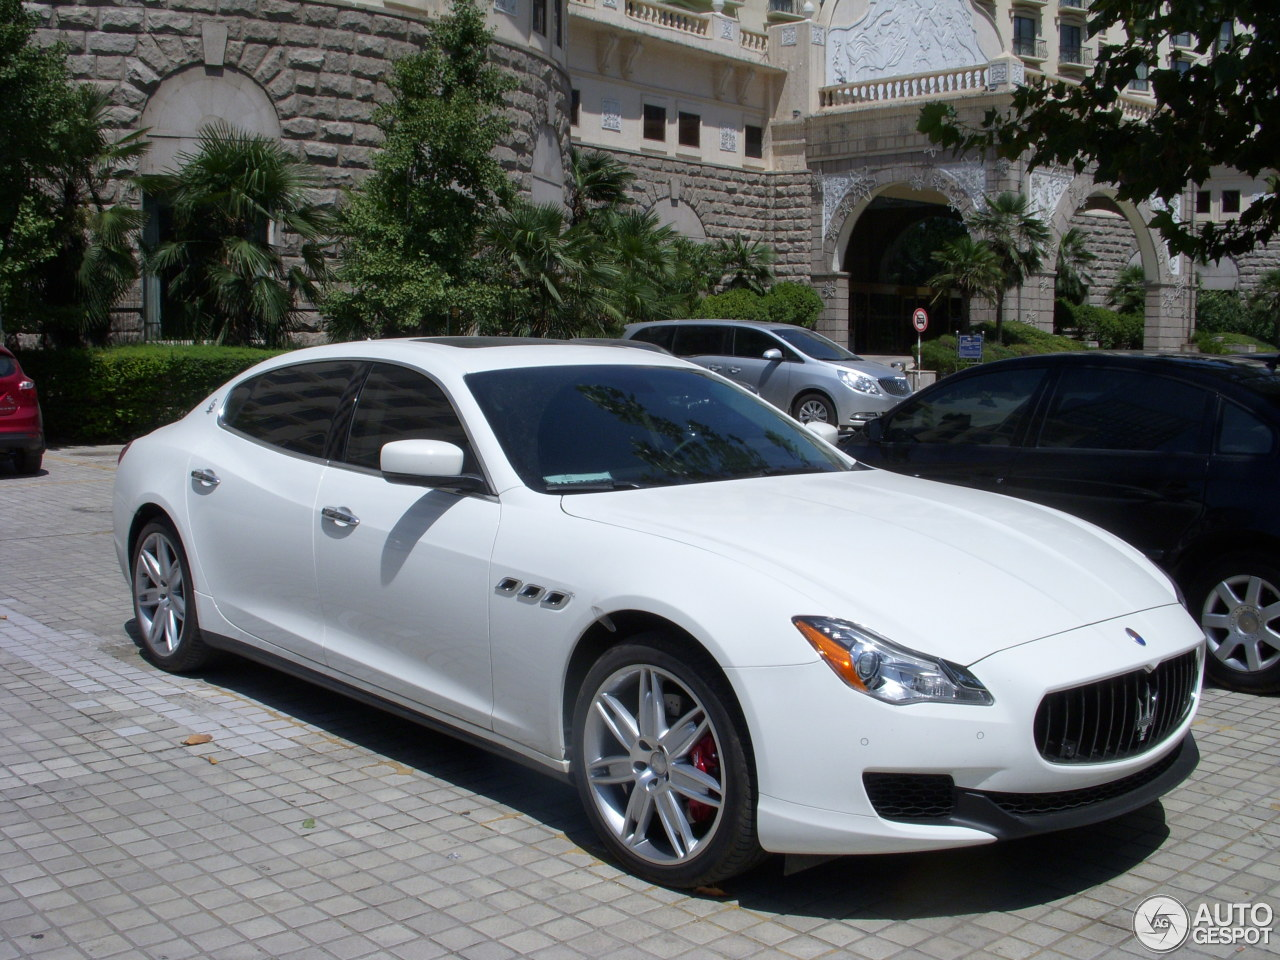 maserati quattroporte s q4 2013 29 august 2013 autogespot. Black Bedroom Furniture Sets. Home Design Ideas